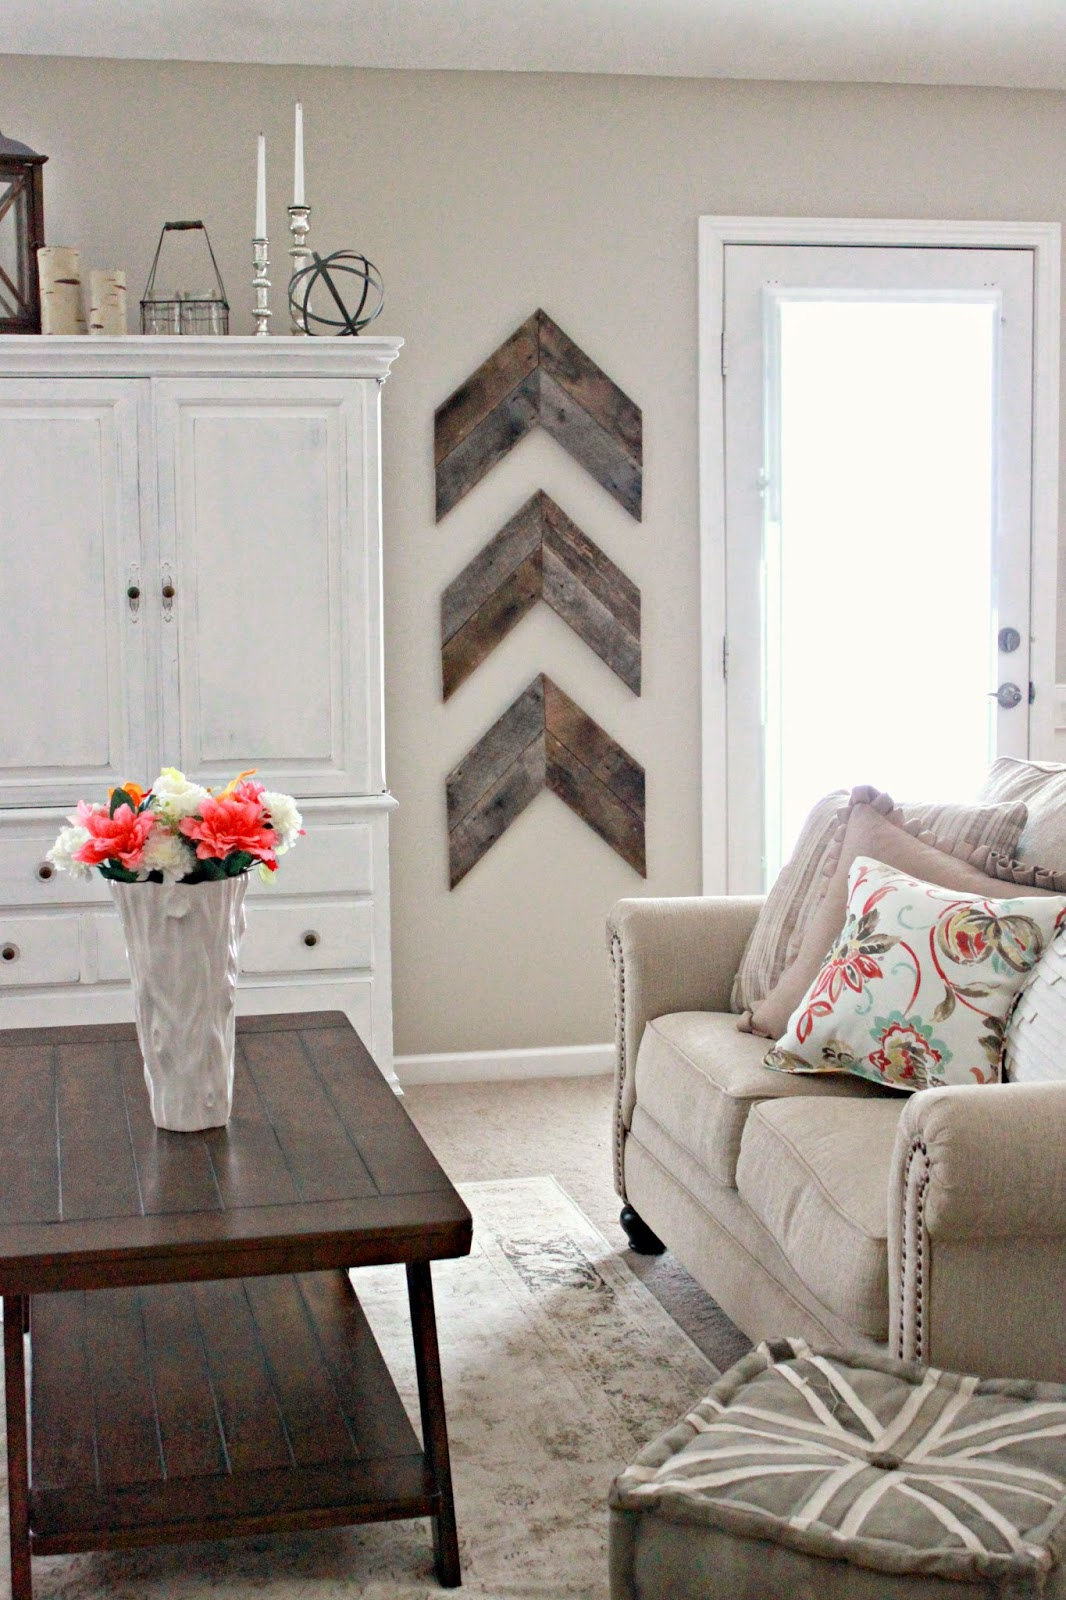 15 striking ways to decorate with arrows for Room decor wall